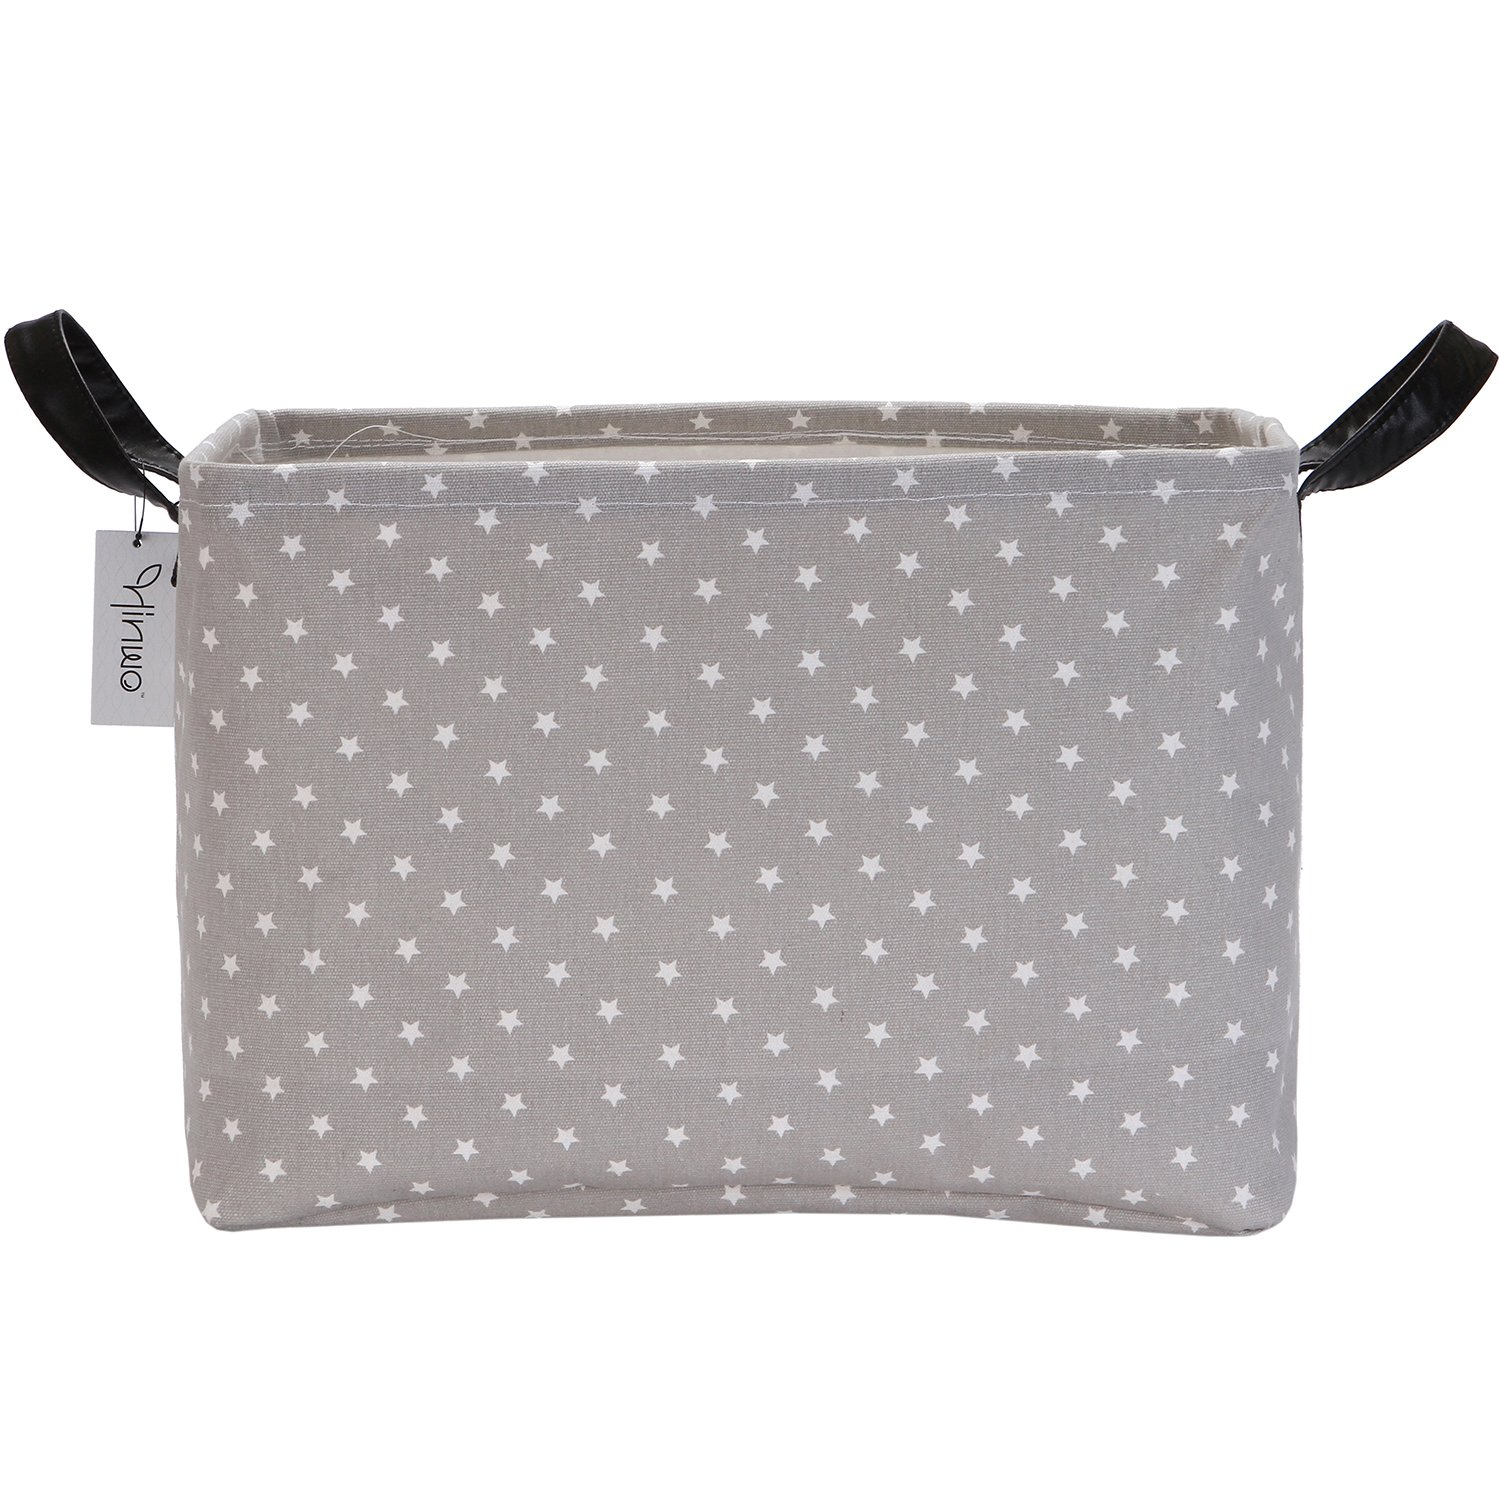 16.5 x 11.4 x 9.8 16.5 x 11.4 x 9.8 HWSB0003STAR Hinwo 30L Stylish Grey Base and White Star Pattern Storage Bin Basket Canvas Fabric Toy Chest Organizer with PU Leather Handles for Kids Toys Clothes Nursery Playroom and Shelves